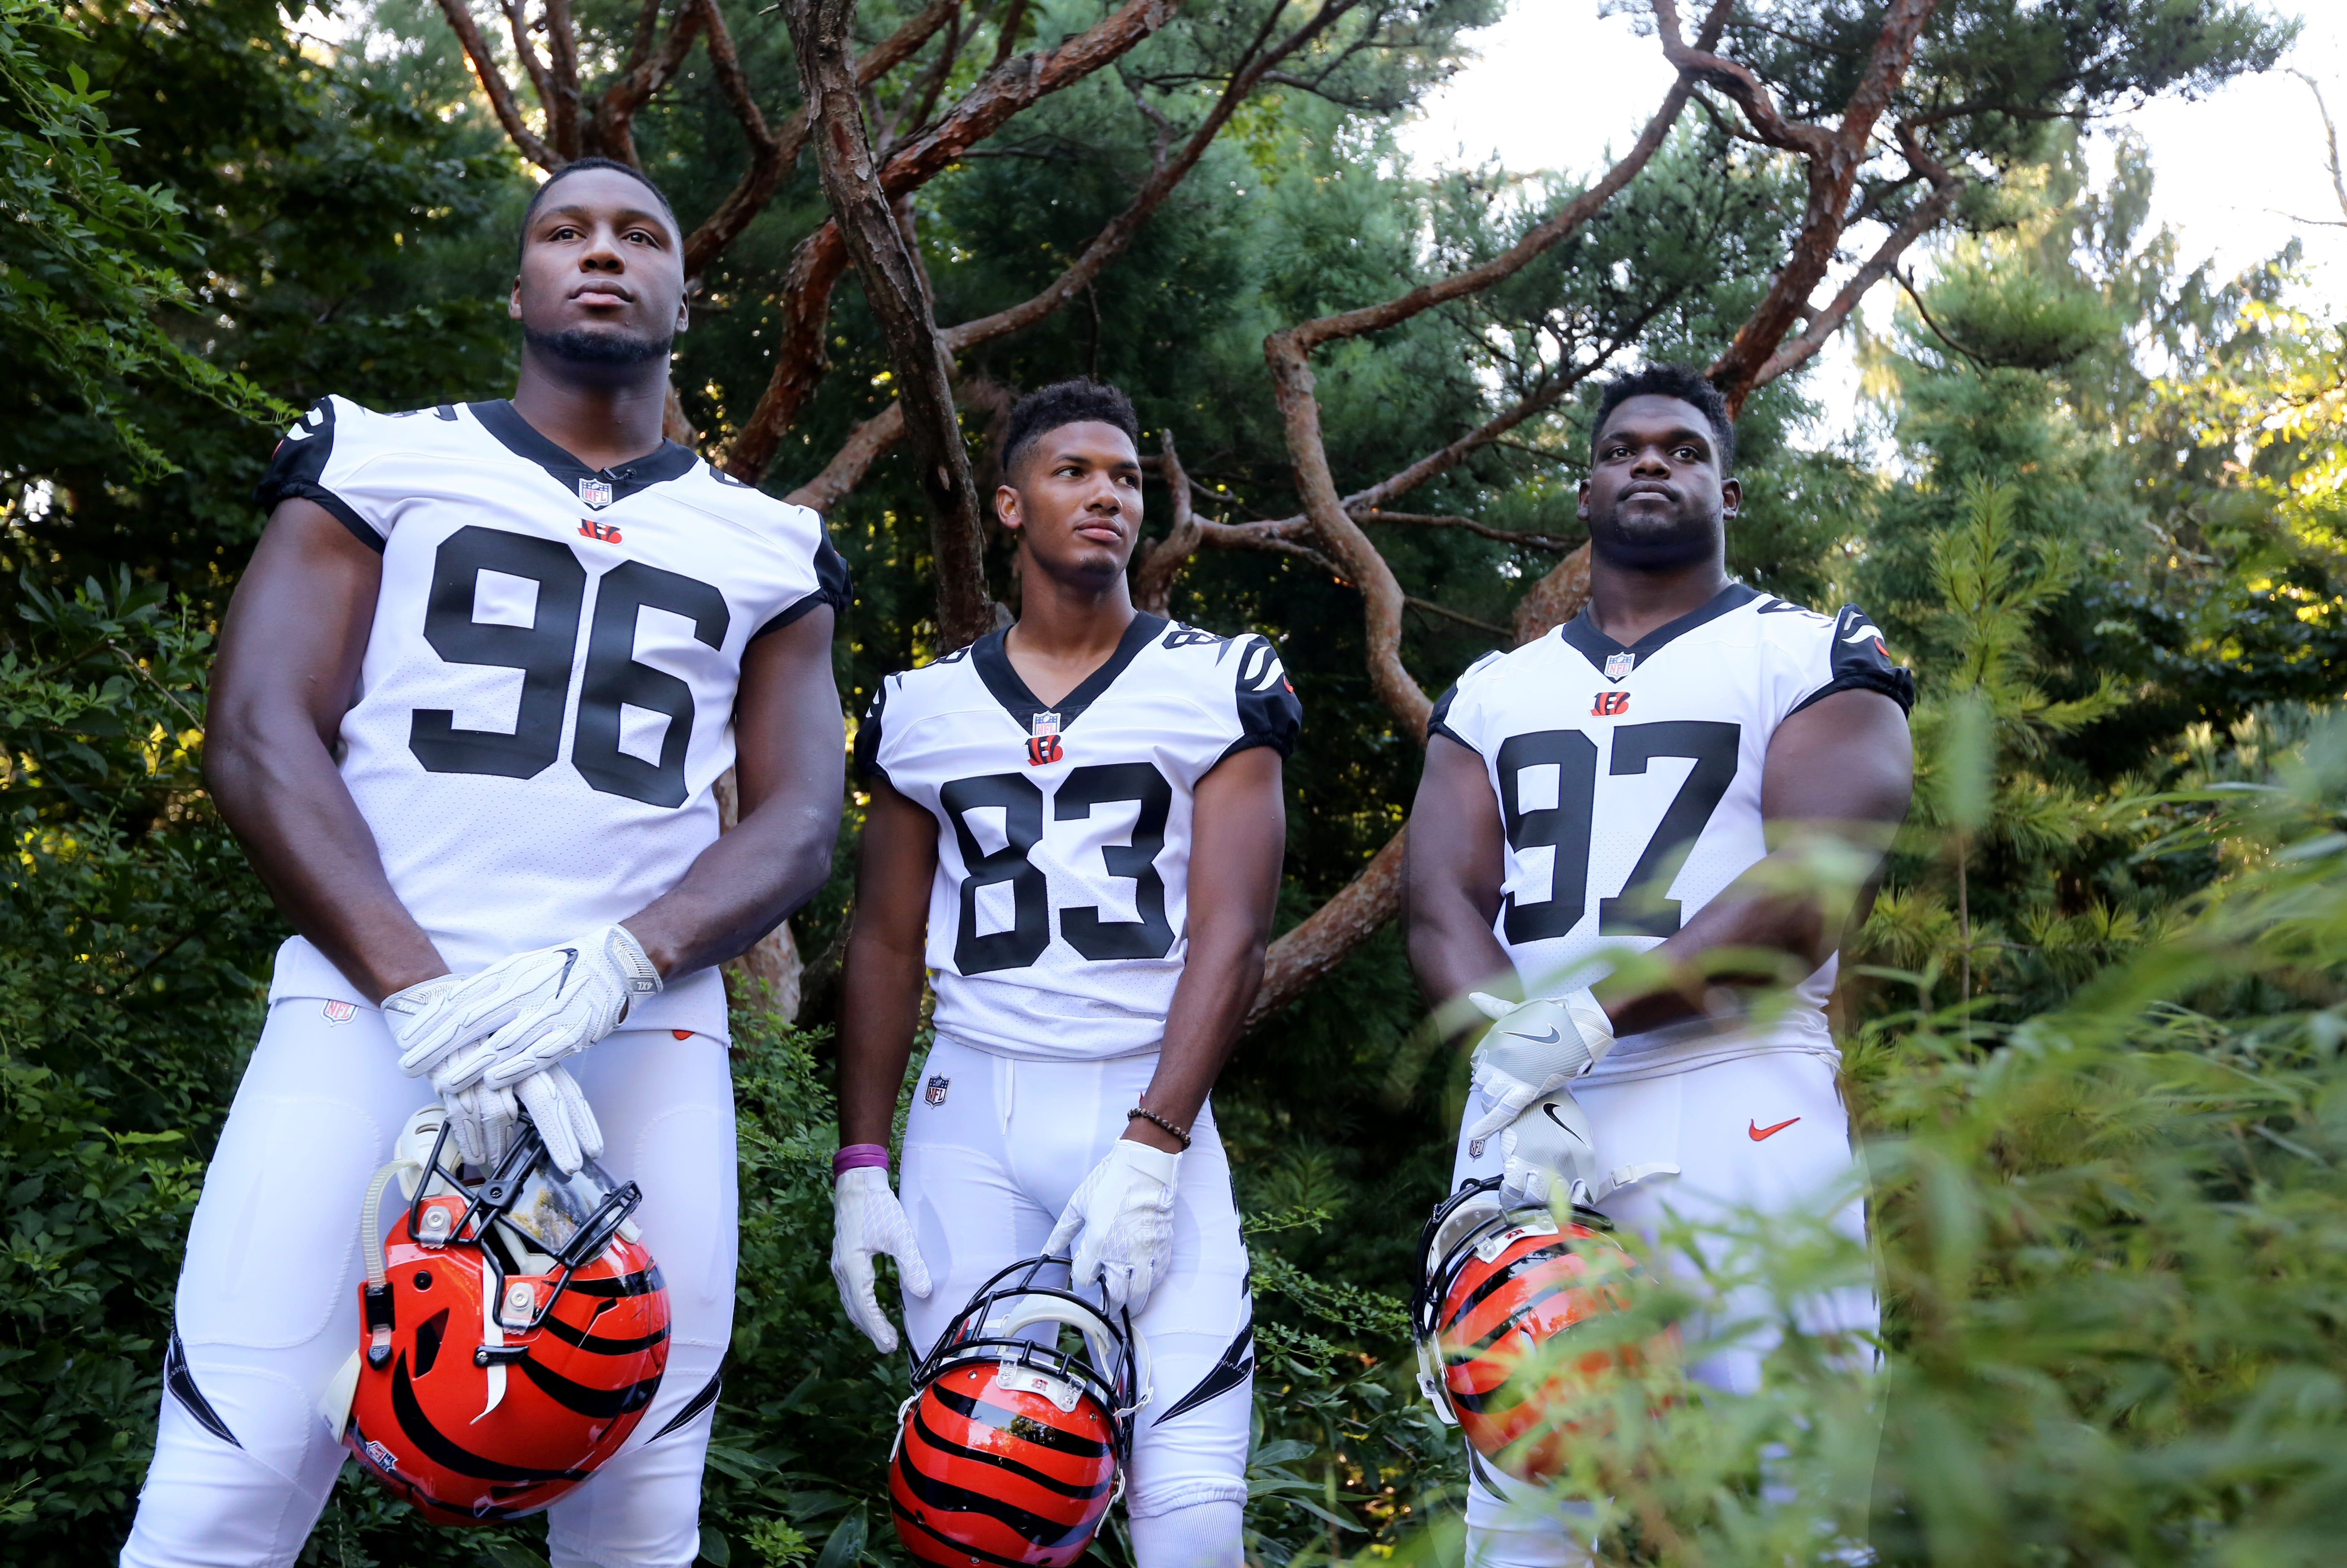 Why don't the Bengals wear white helmets?